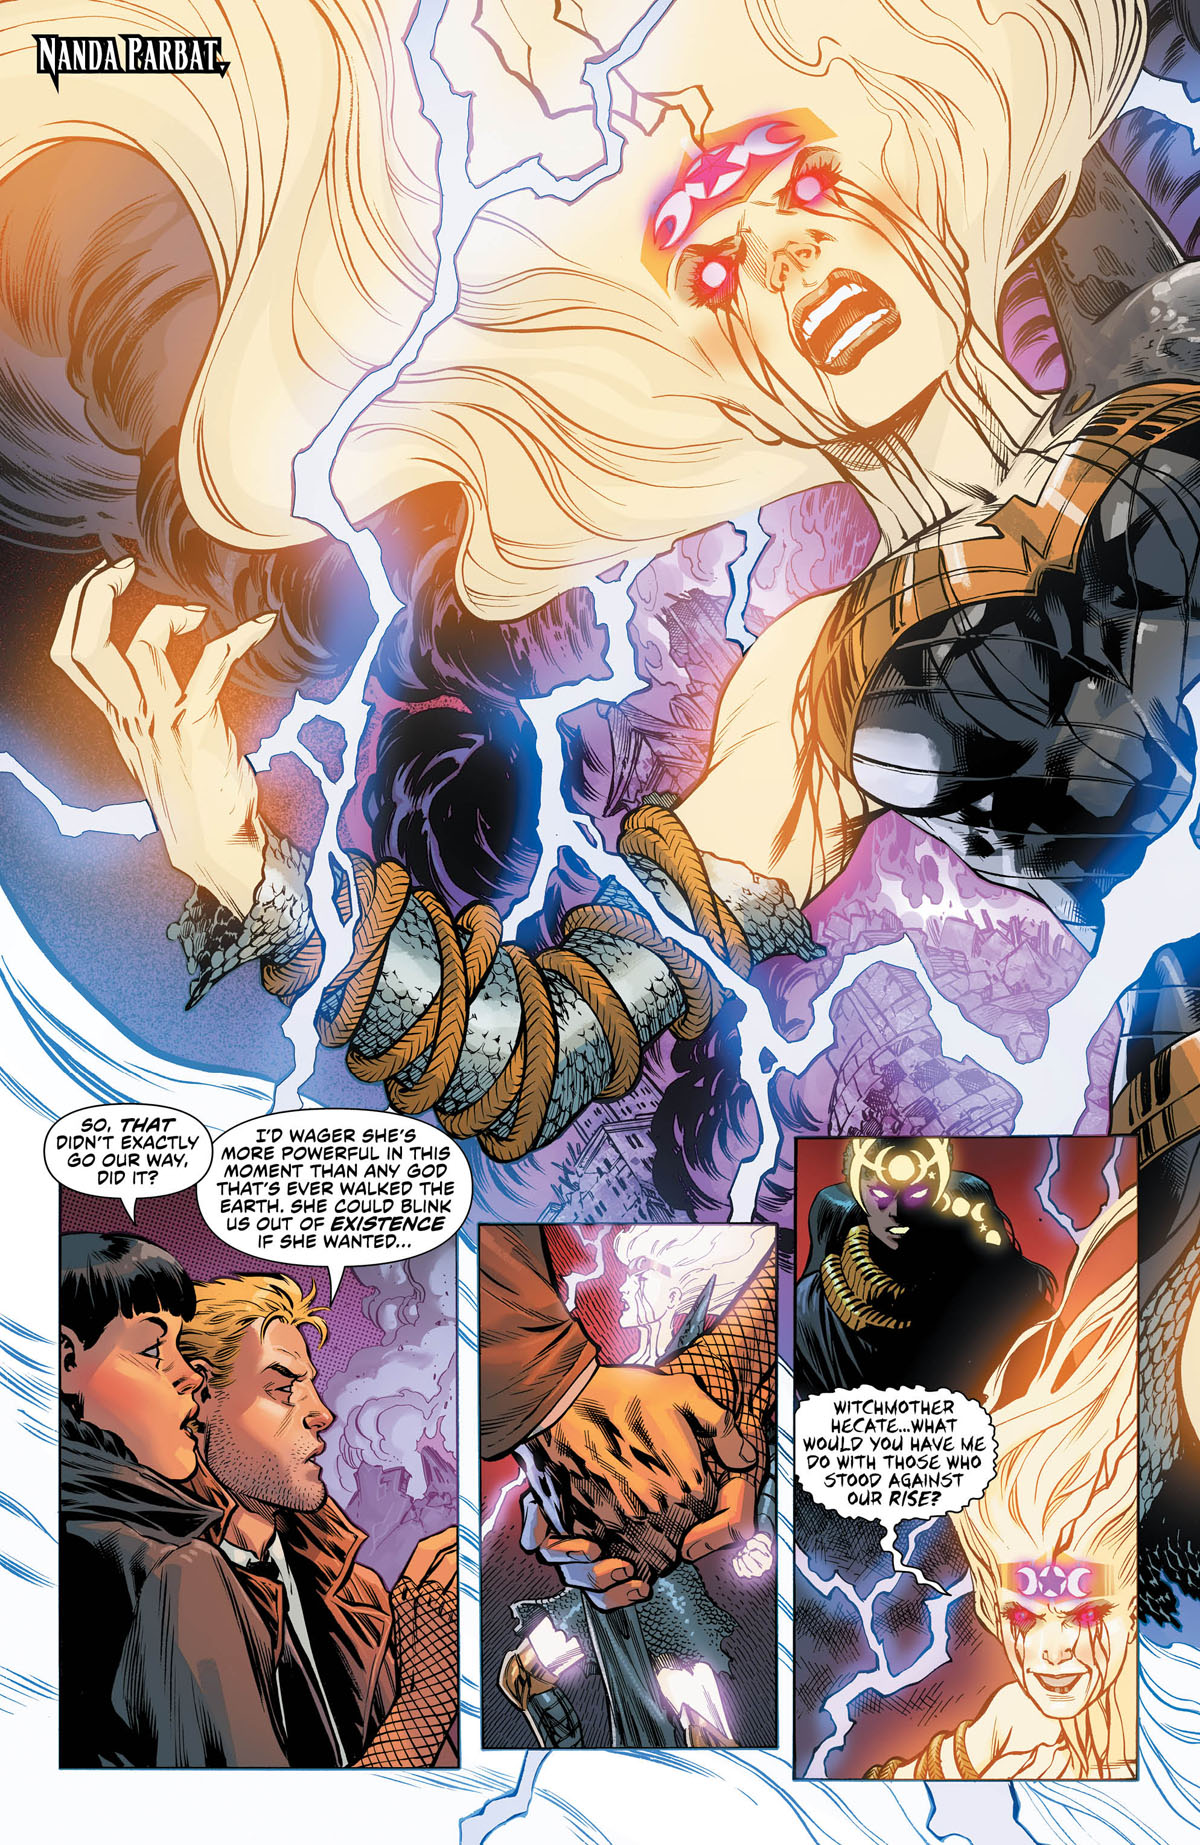 Justice League Dark Wonder Woman: The Witching Hour #1 page 6